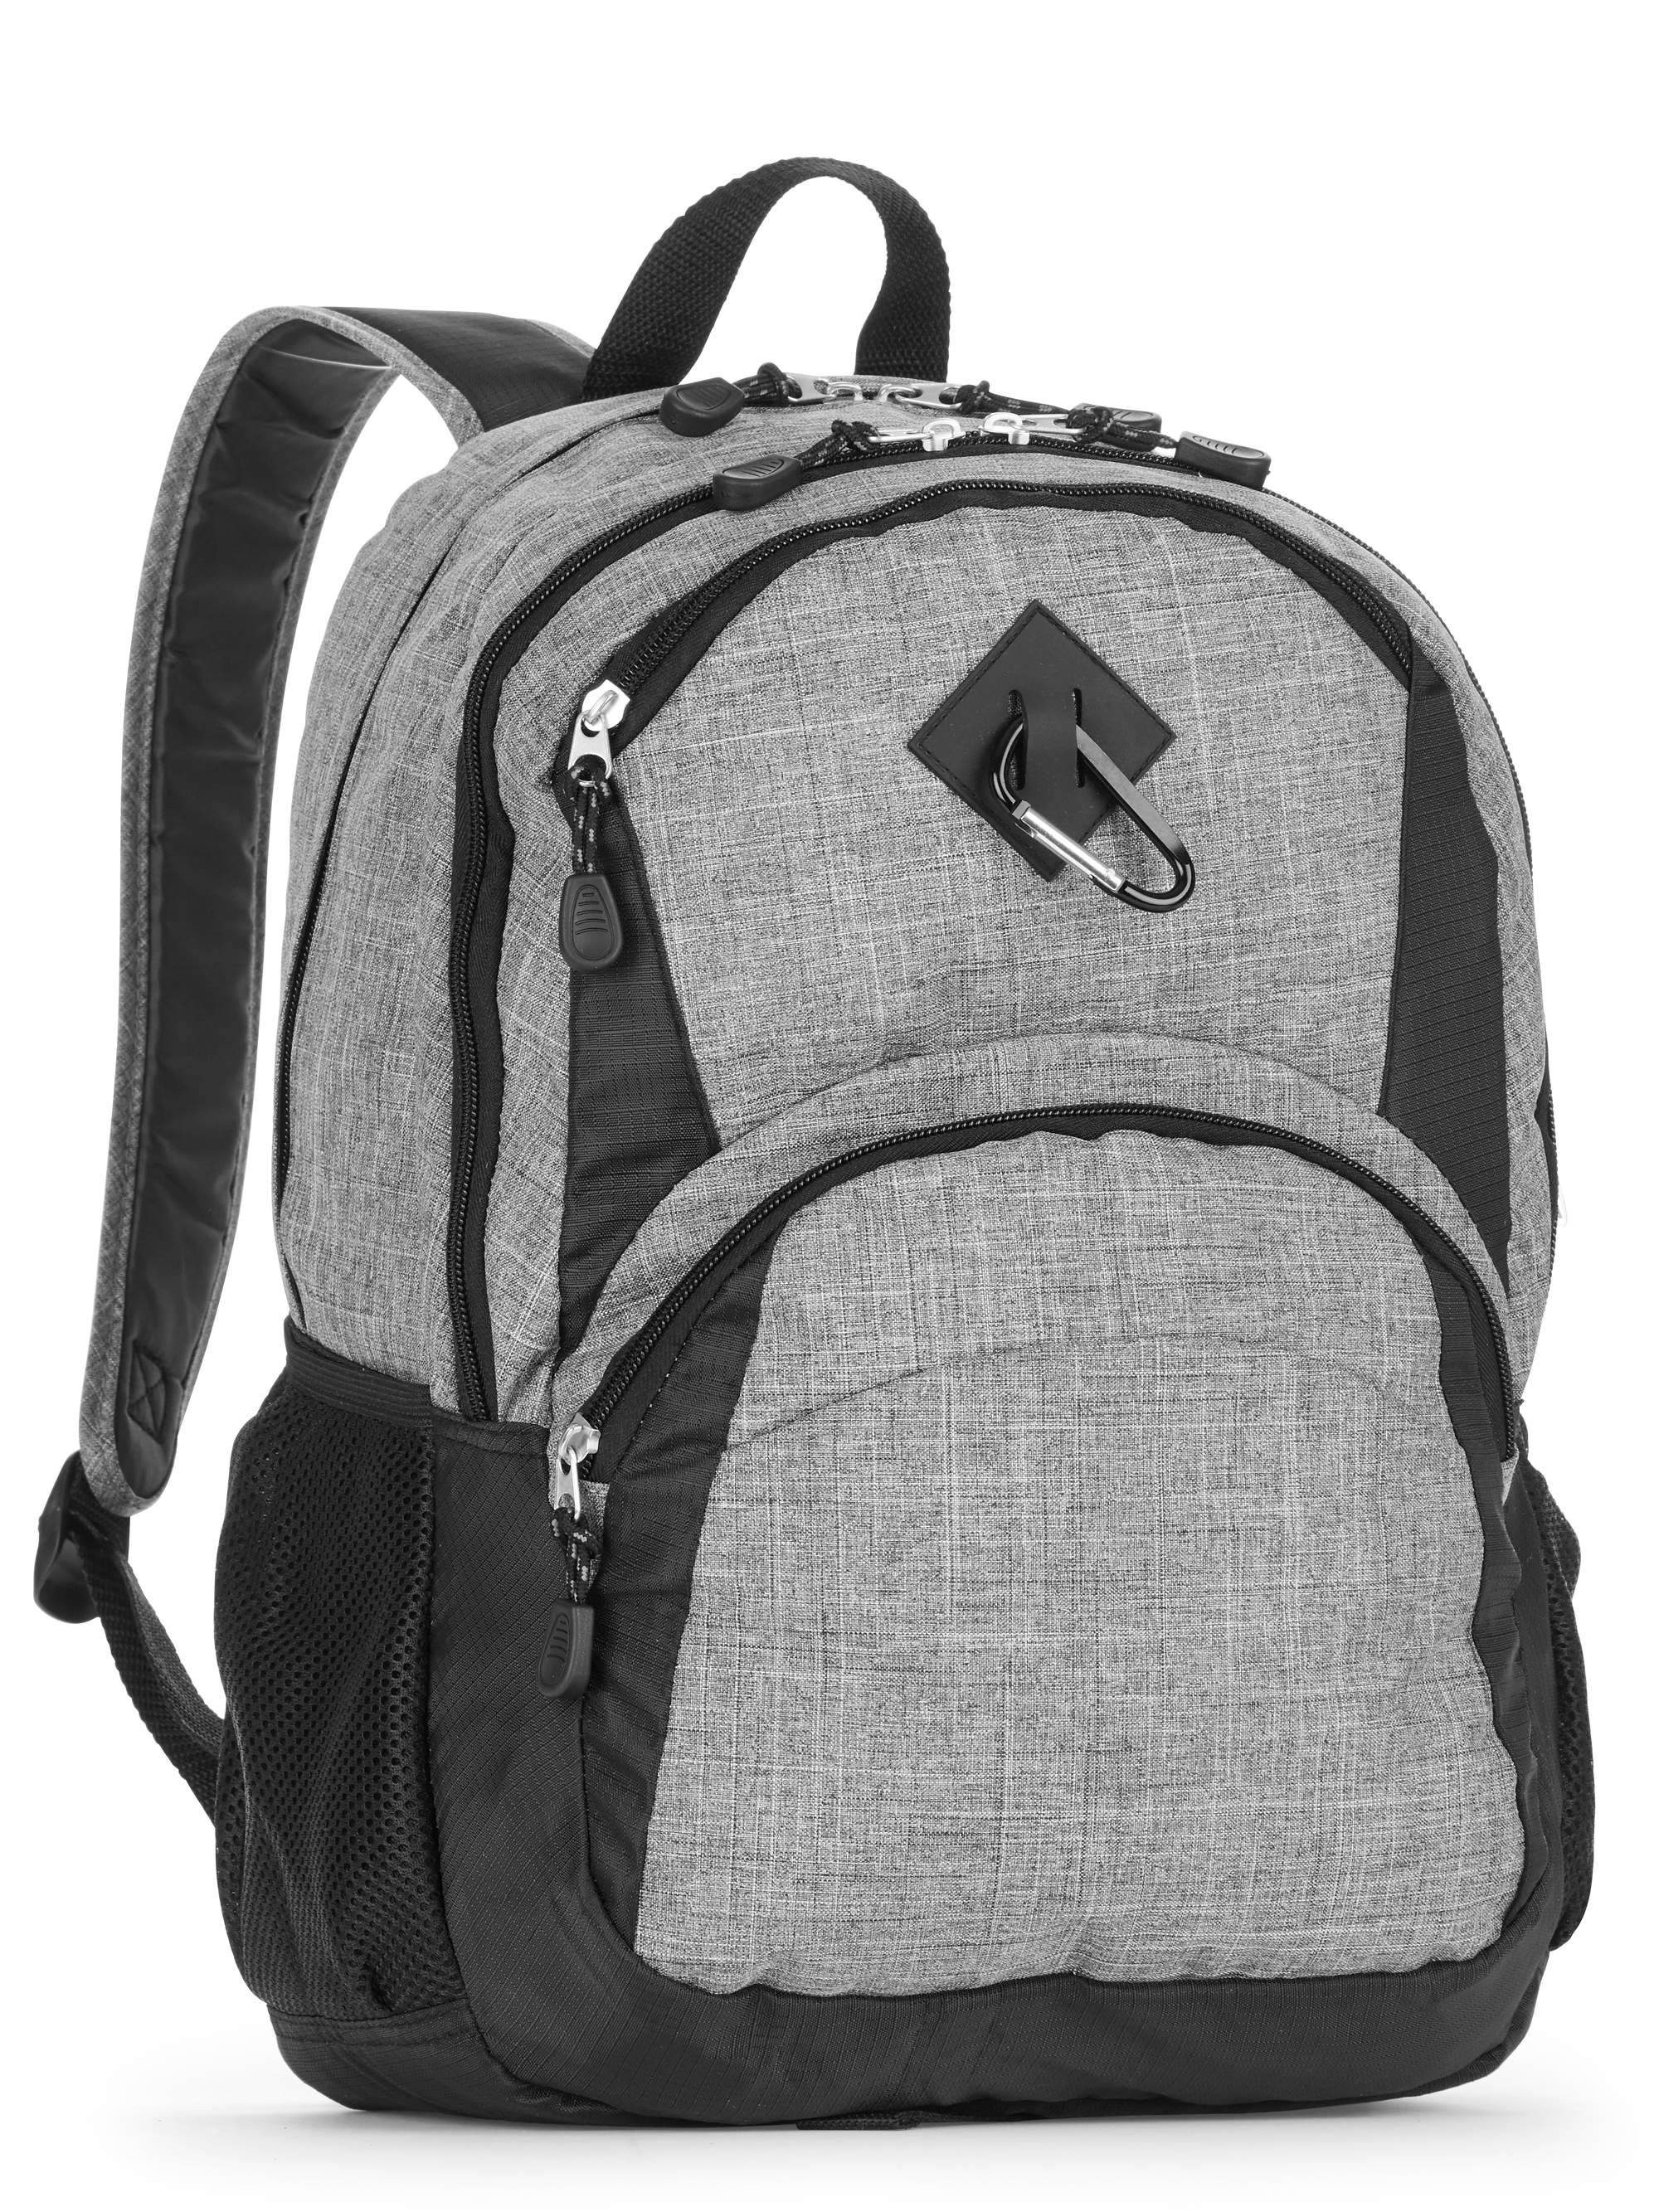 Boys' Quad Backpack by QIMING